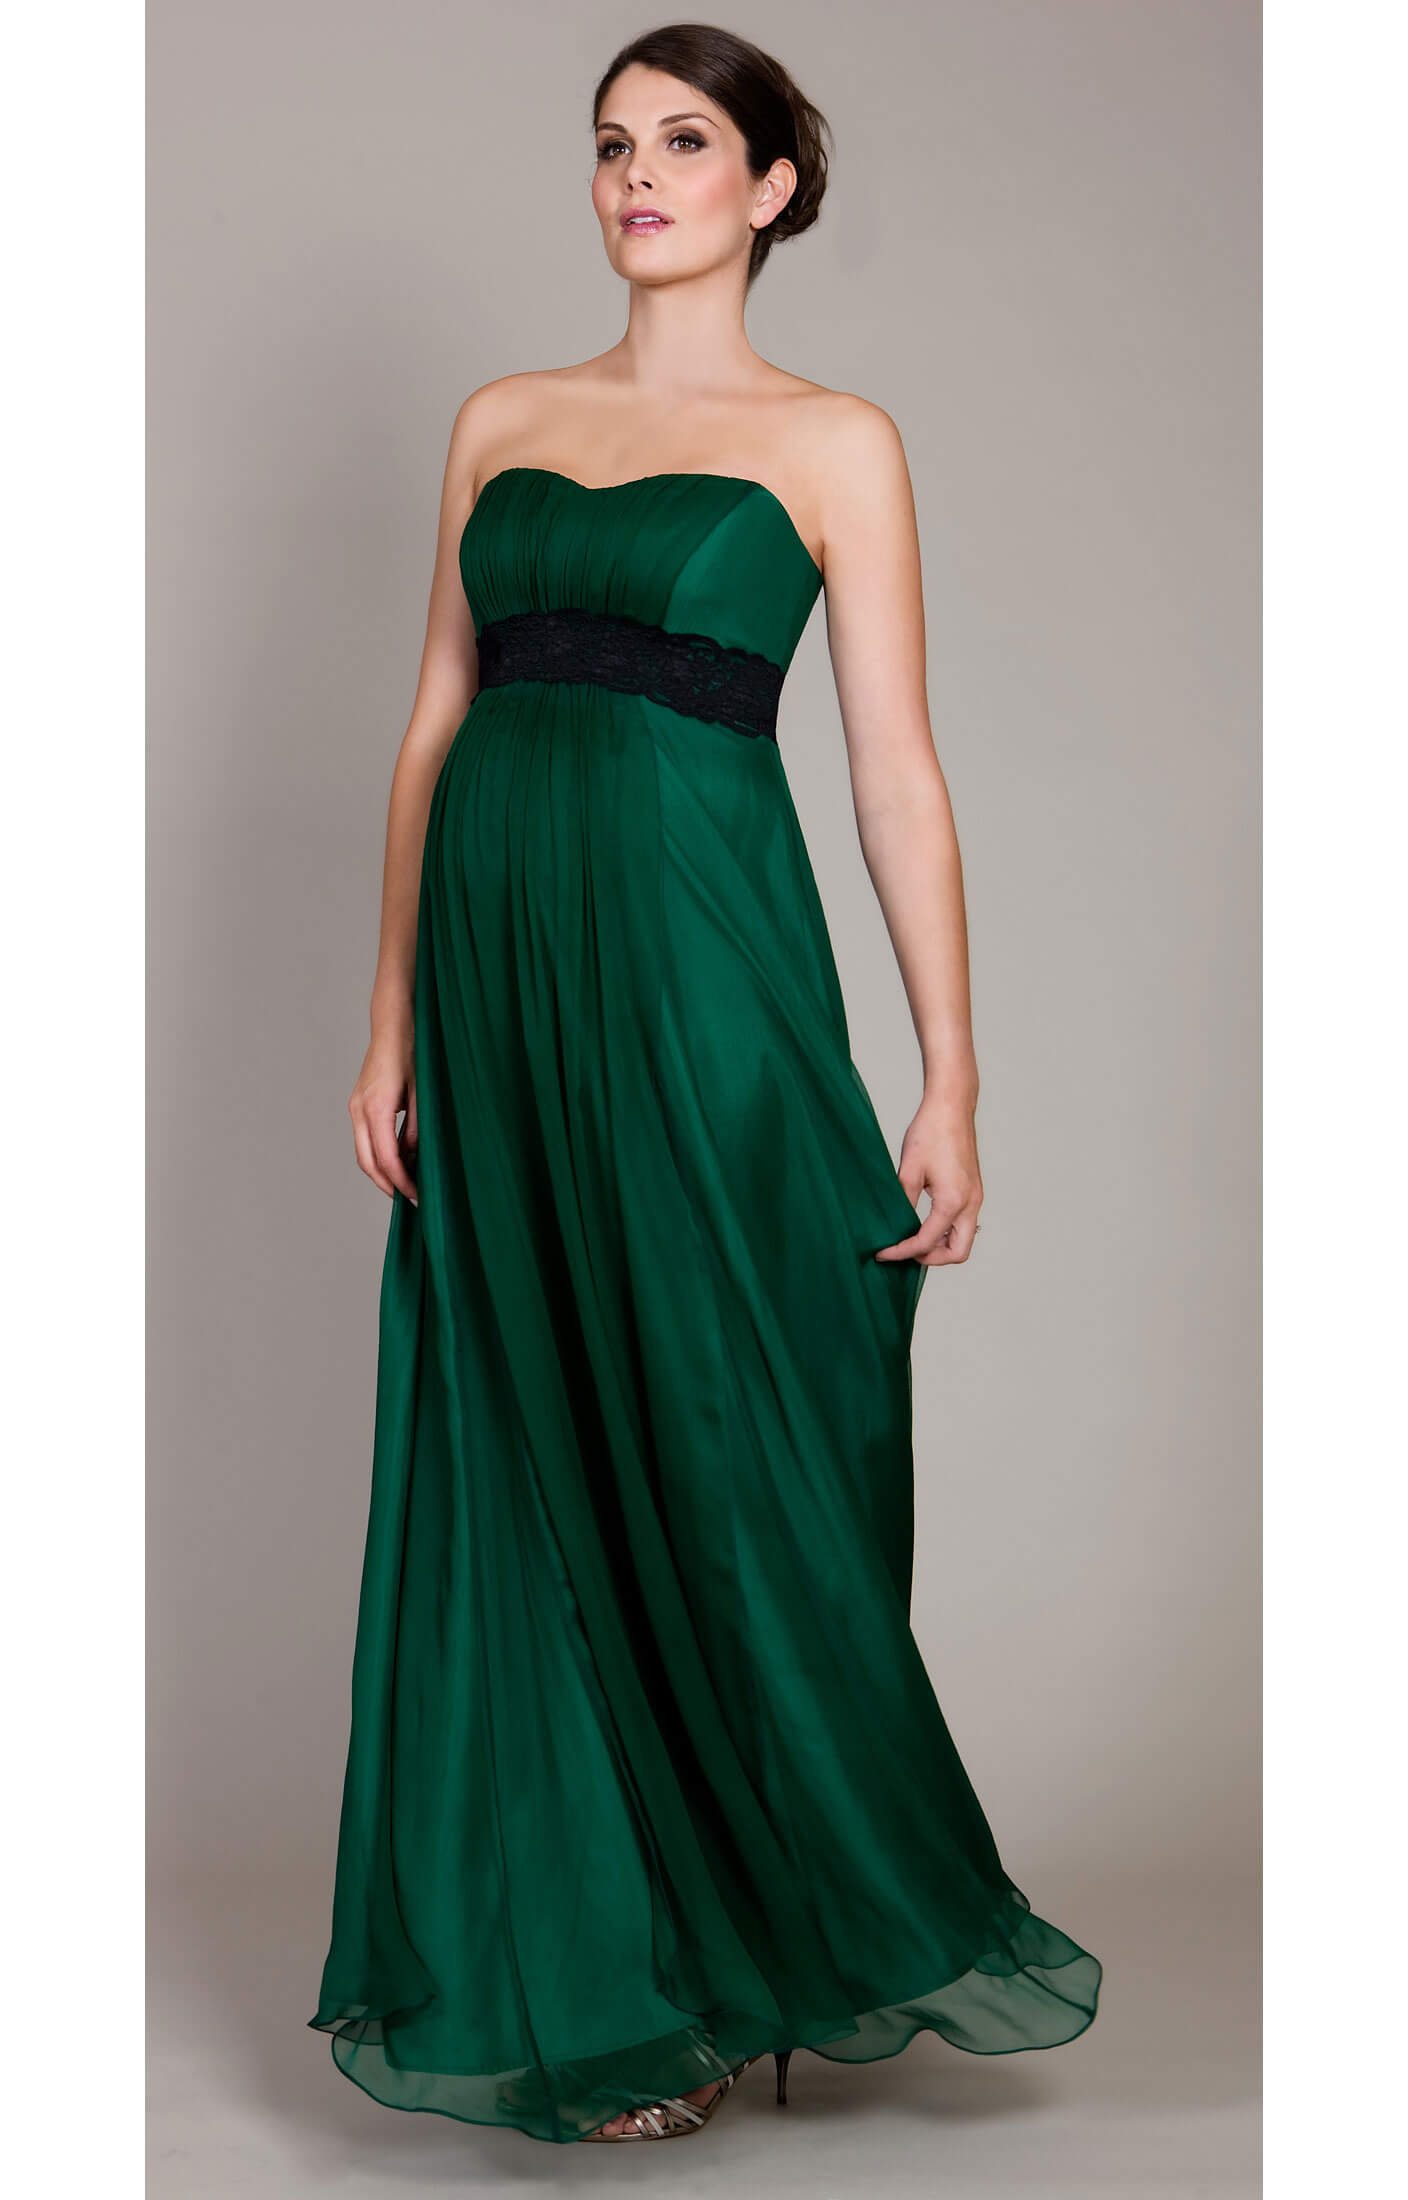 Emerald maternity gown with black lace sash maternity wedding emerald maternity gown with black lace sash by tiffany rose ombrellifo Image collections